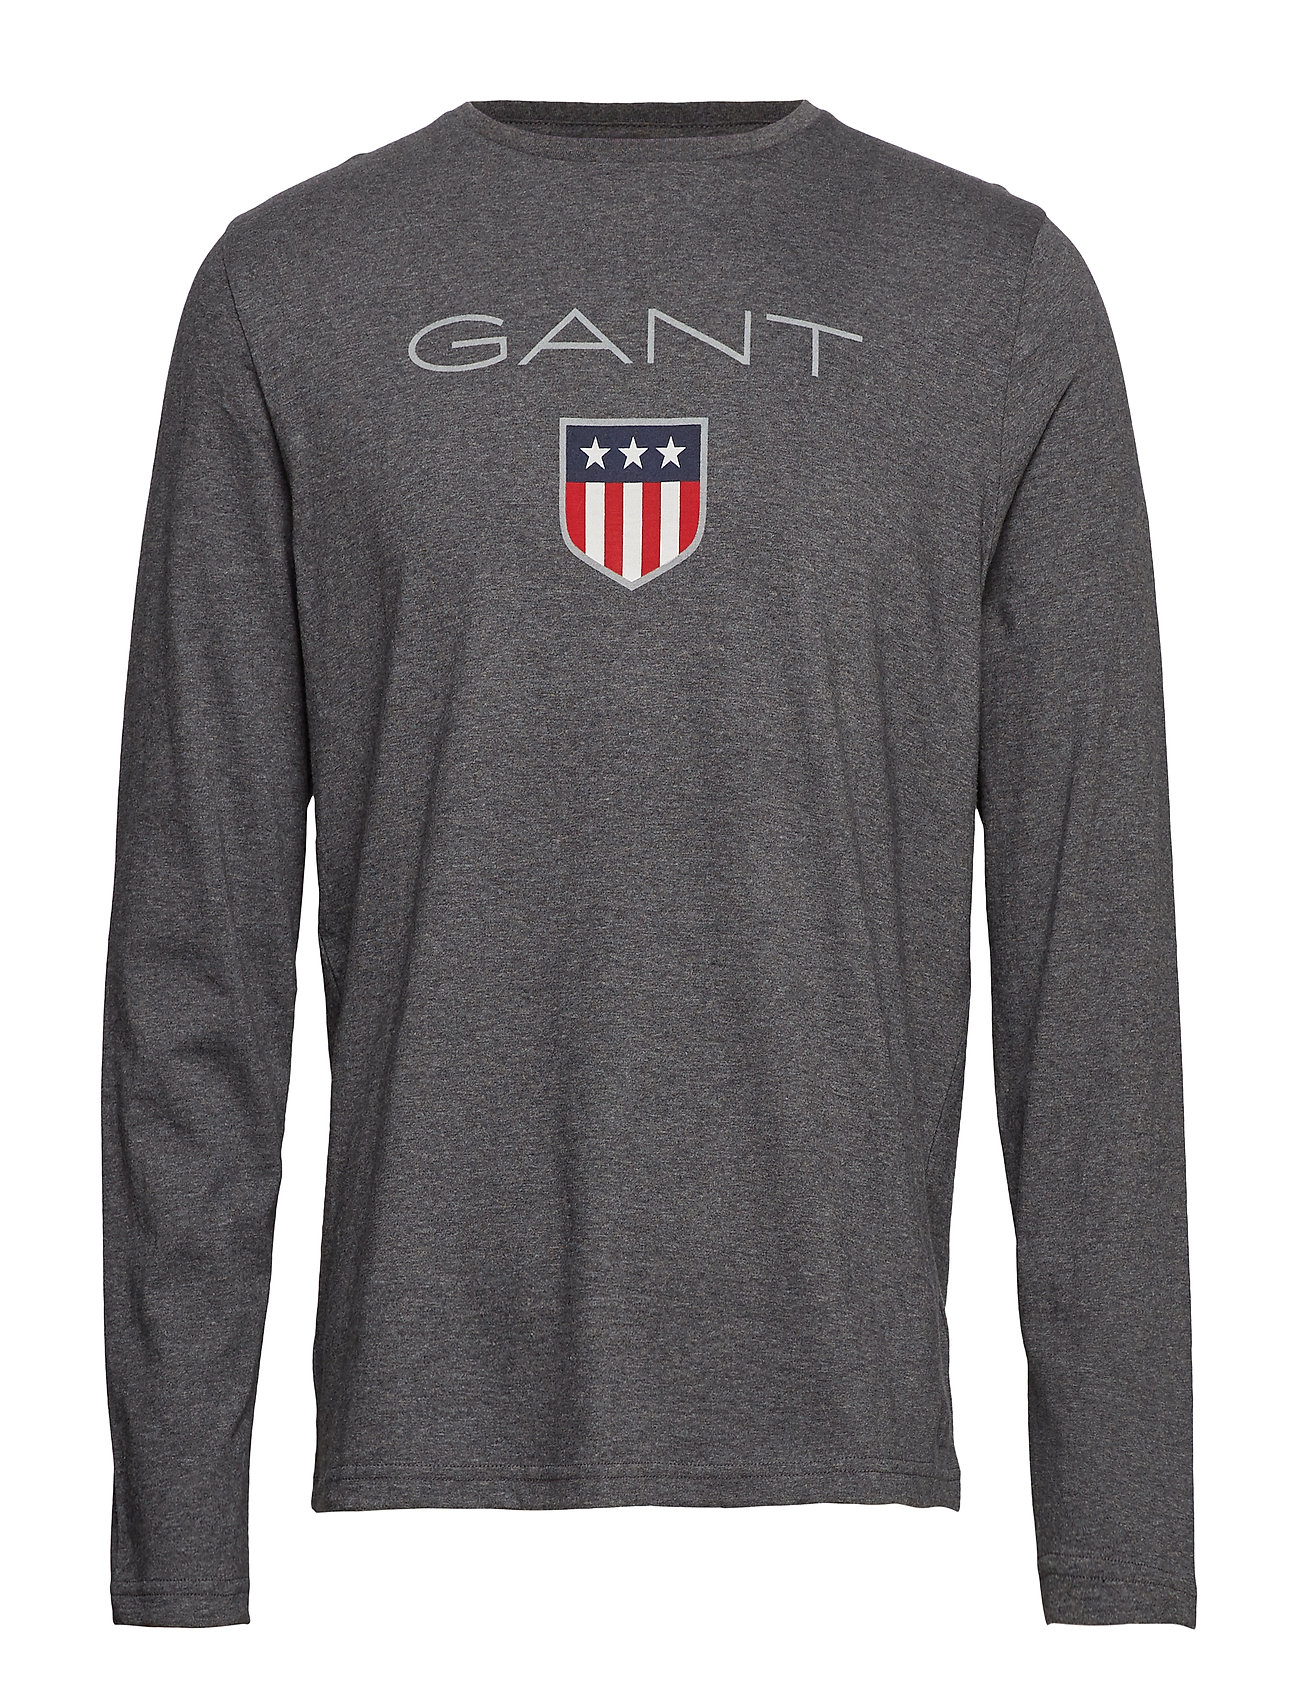 Gant SHIELD LS T-SHIRT - CHARCOAL MELANGE